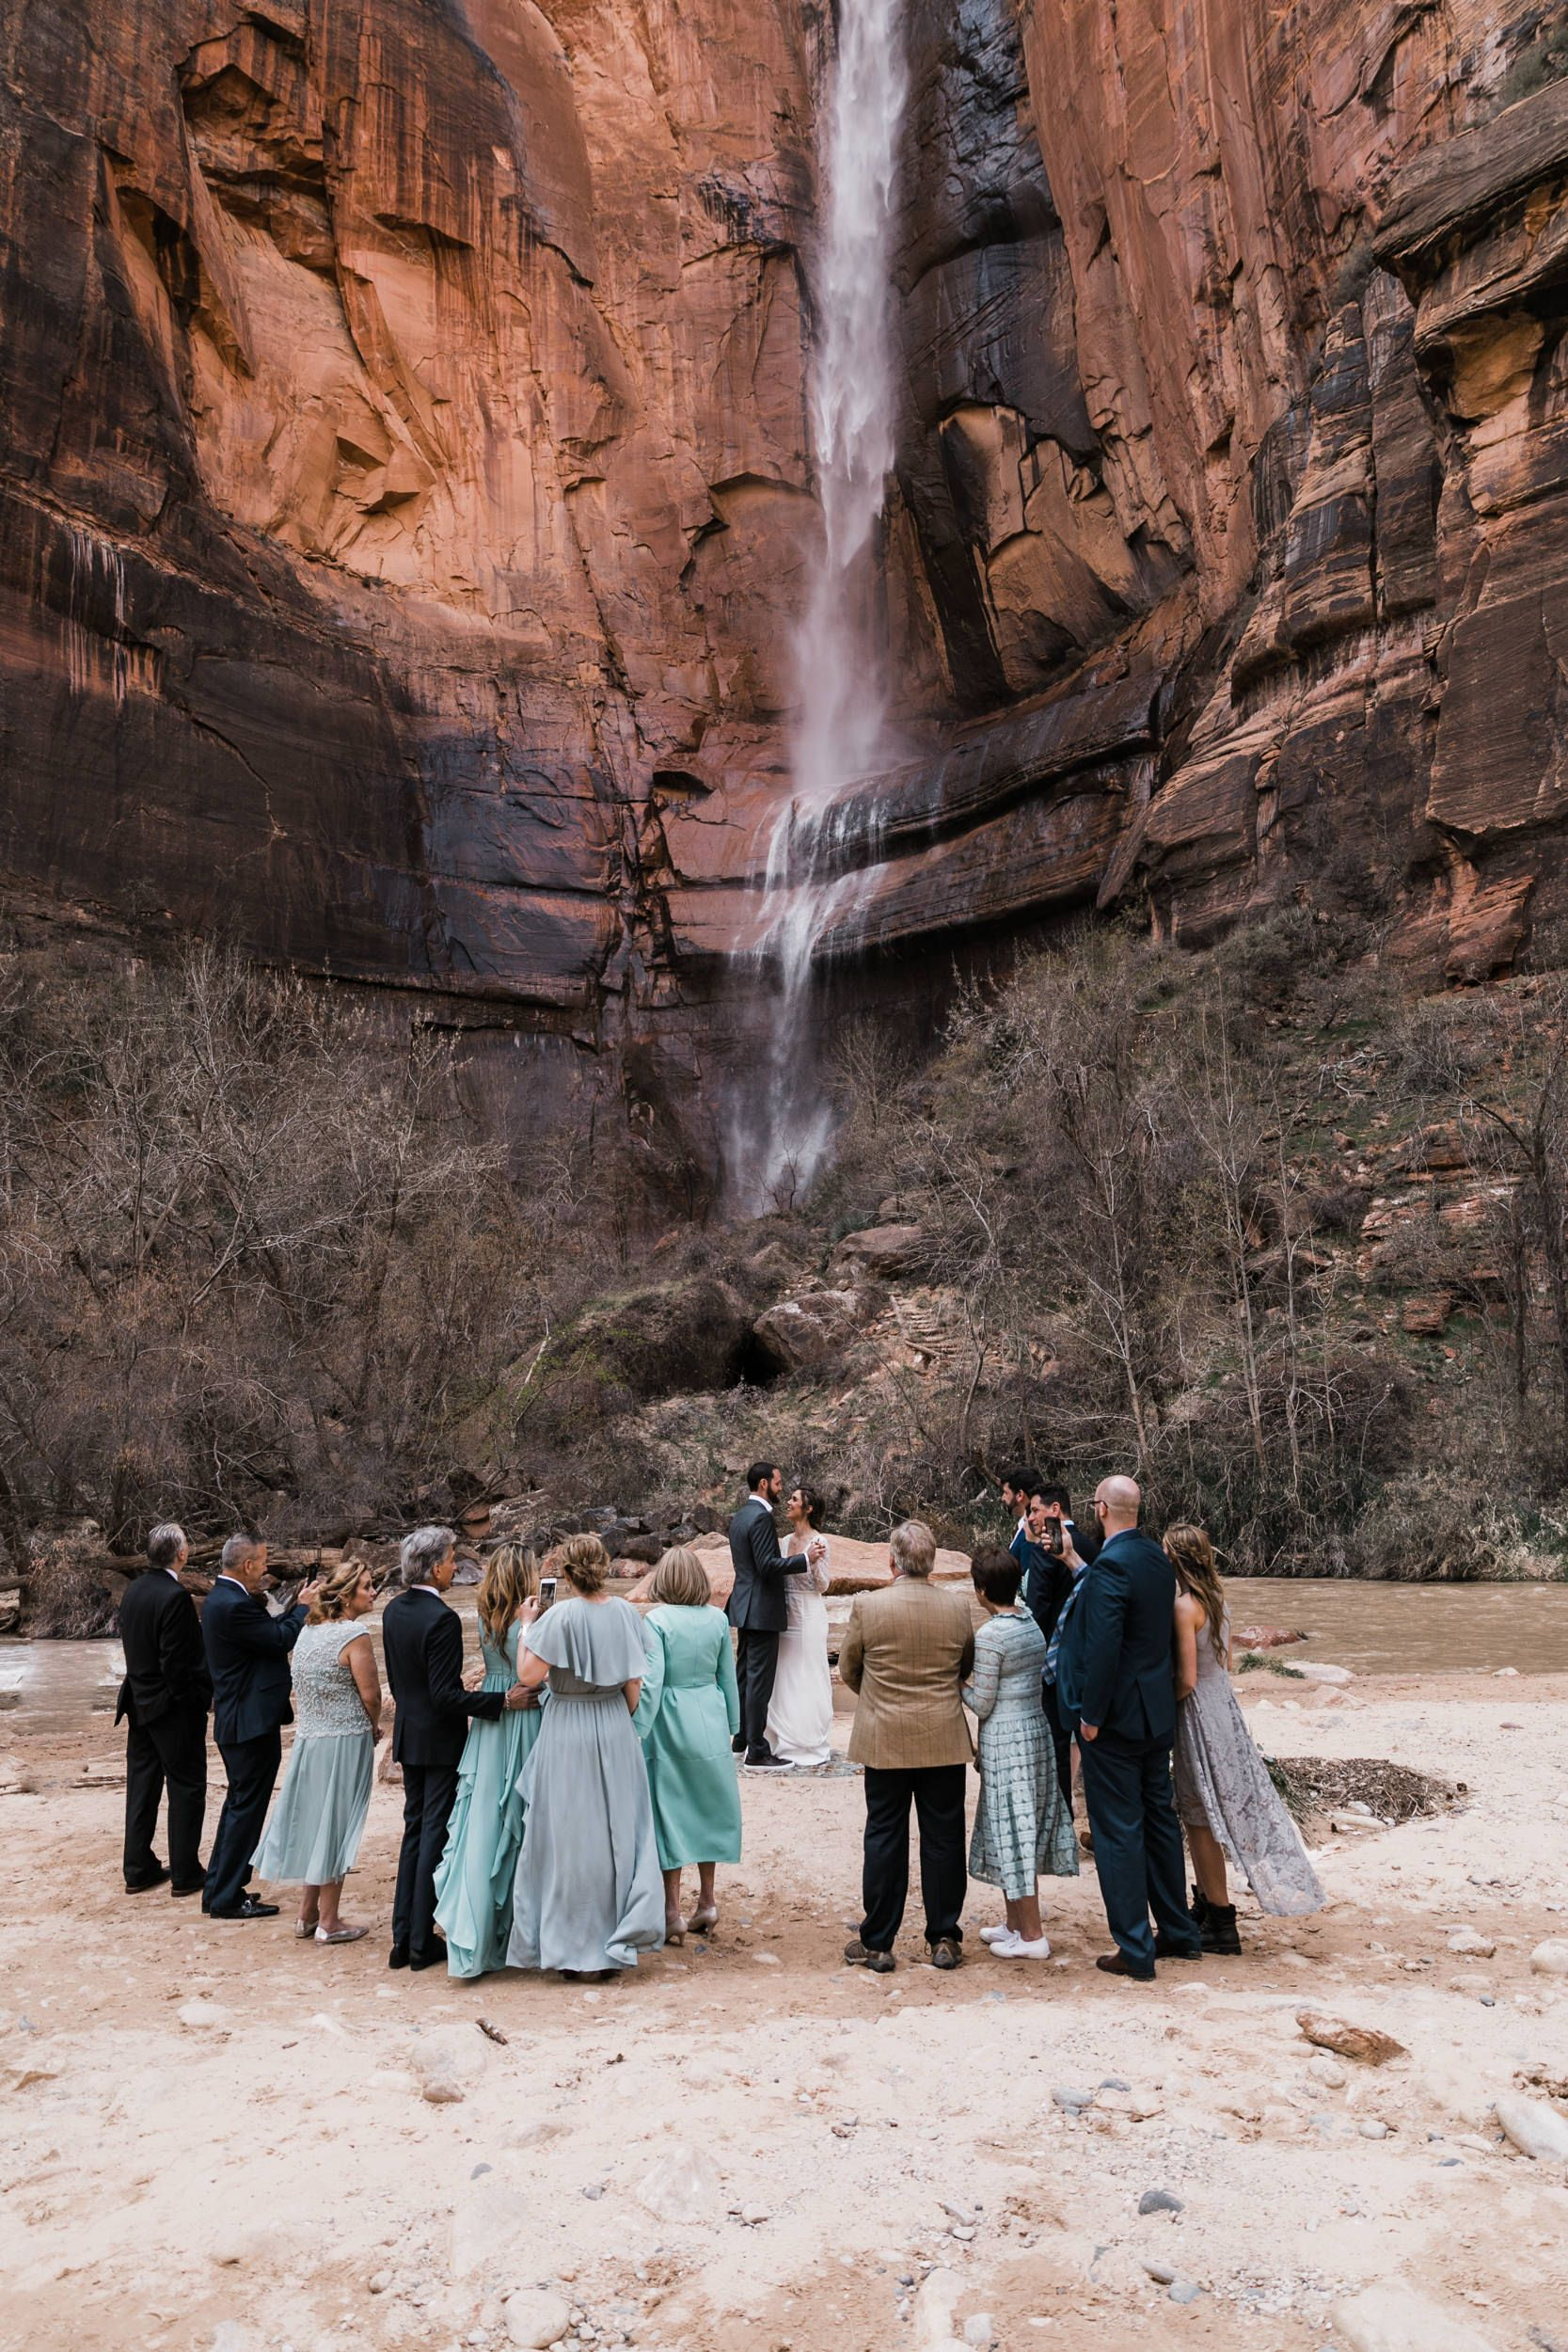 Zion National Park Wedding Utah Adventure Elopement Inspiration Adventure Wedding Elopement Photographers In Moab Yosemite And Beyond The Hearnes In 2020 National Park Wedding Park Weddings Zion National Park Photography